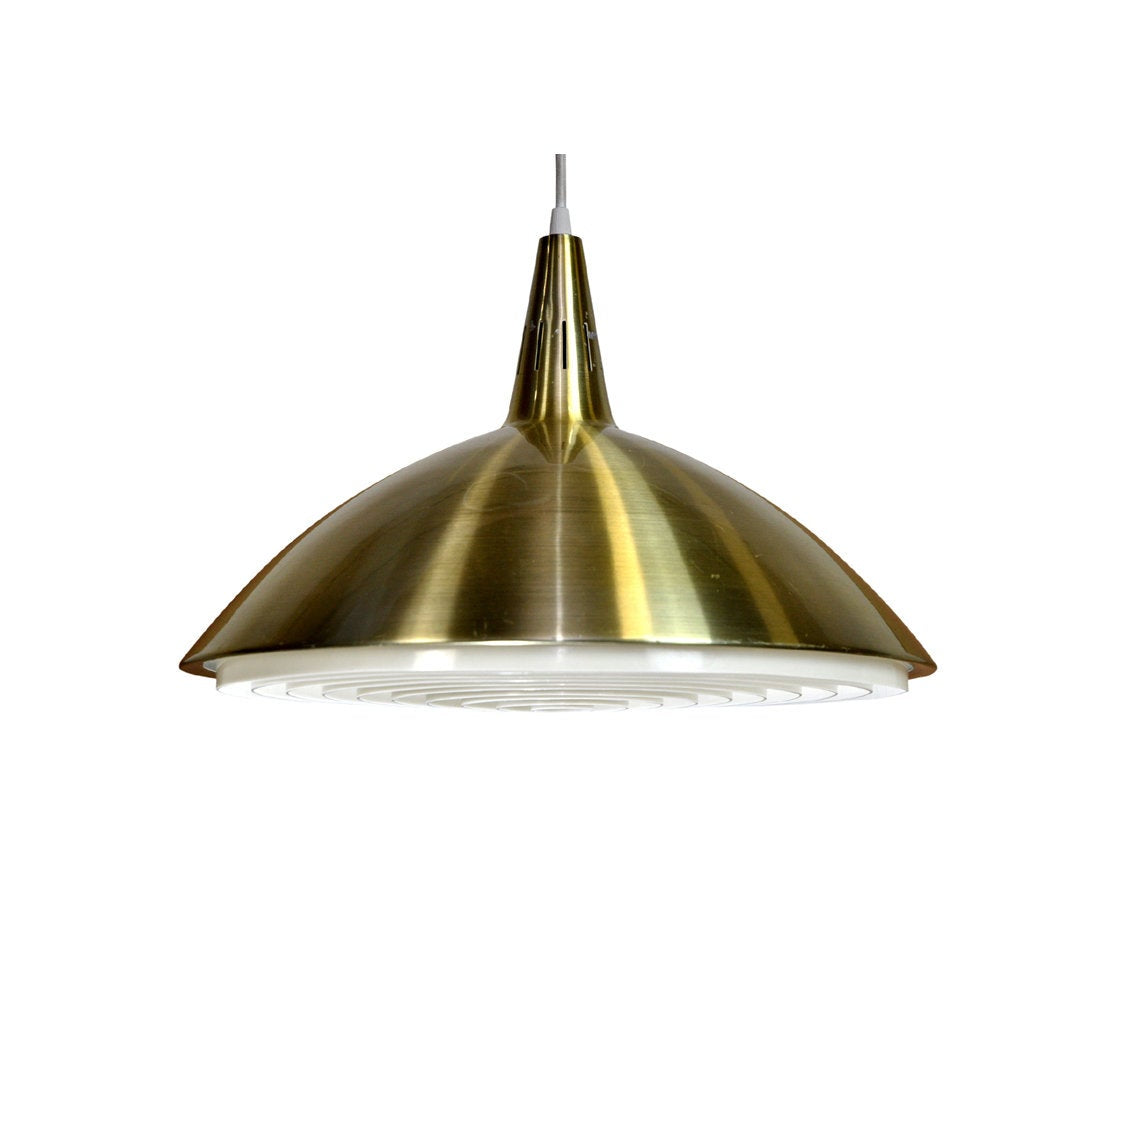 French Mid Century Modern Pendant Light - AndersBrowne Mid Century Furniture